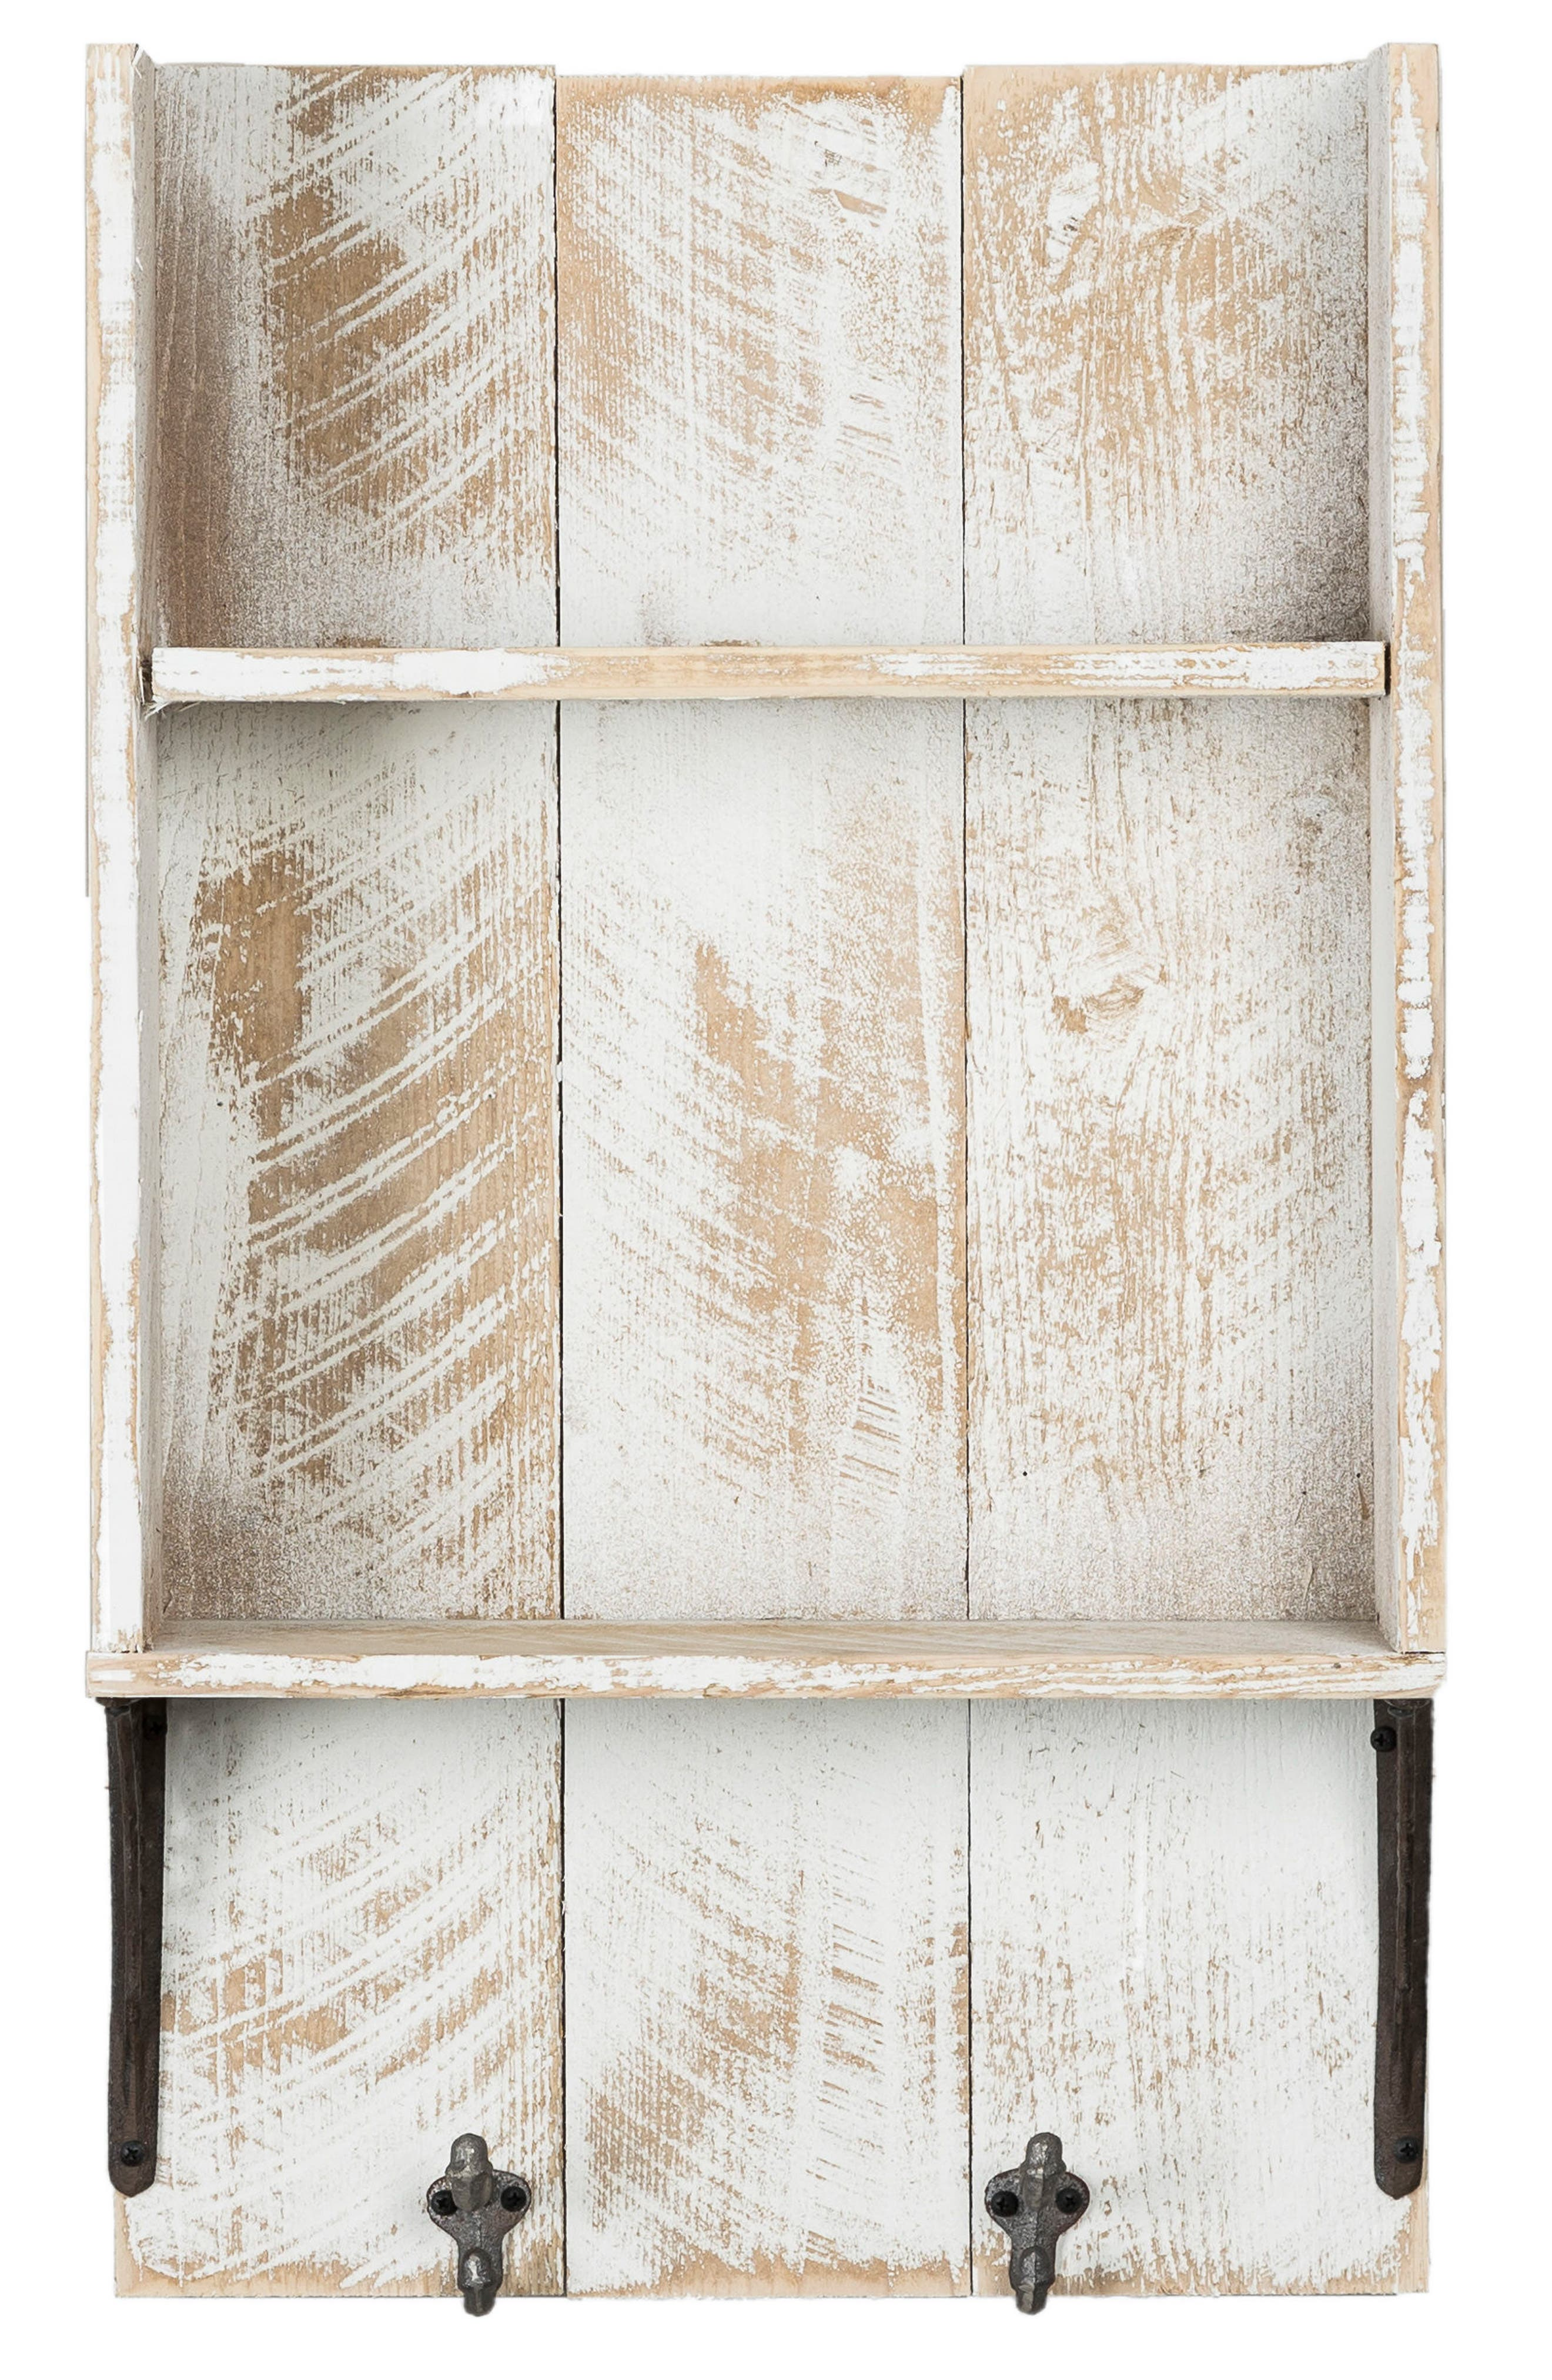 Reclaimed Wood Shelf with Hooks,                             Main thumbnail 1, color,                             100